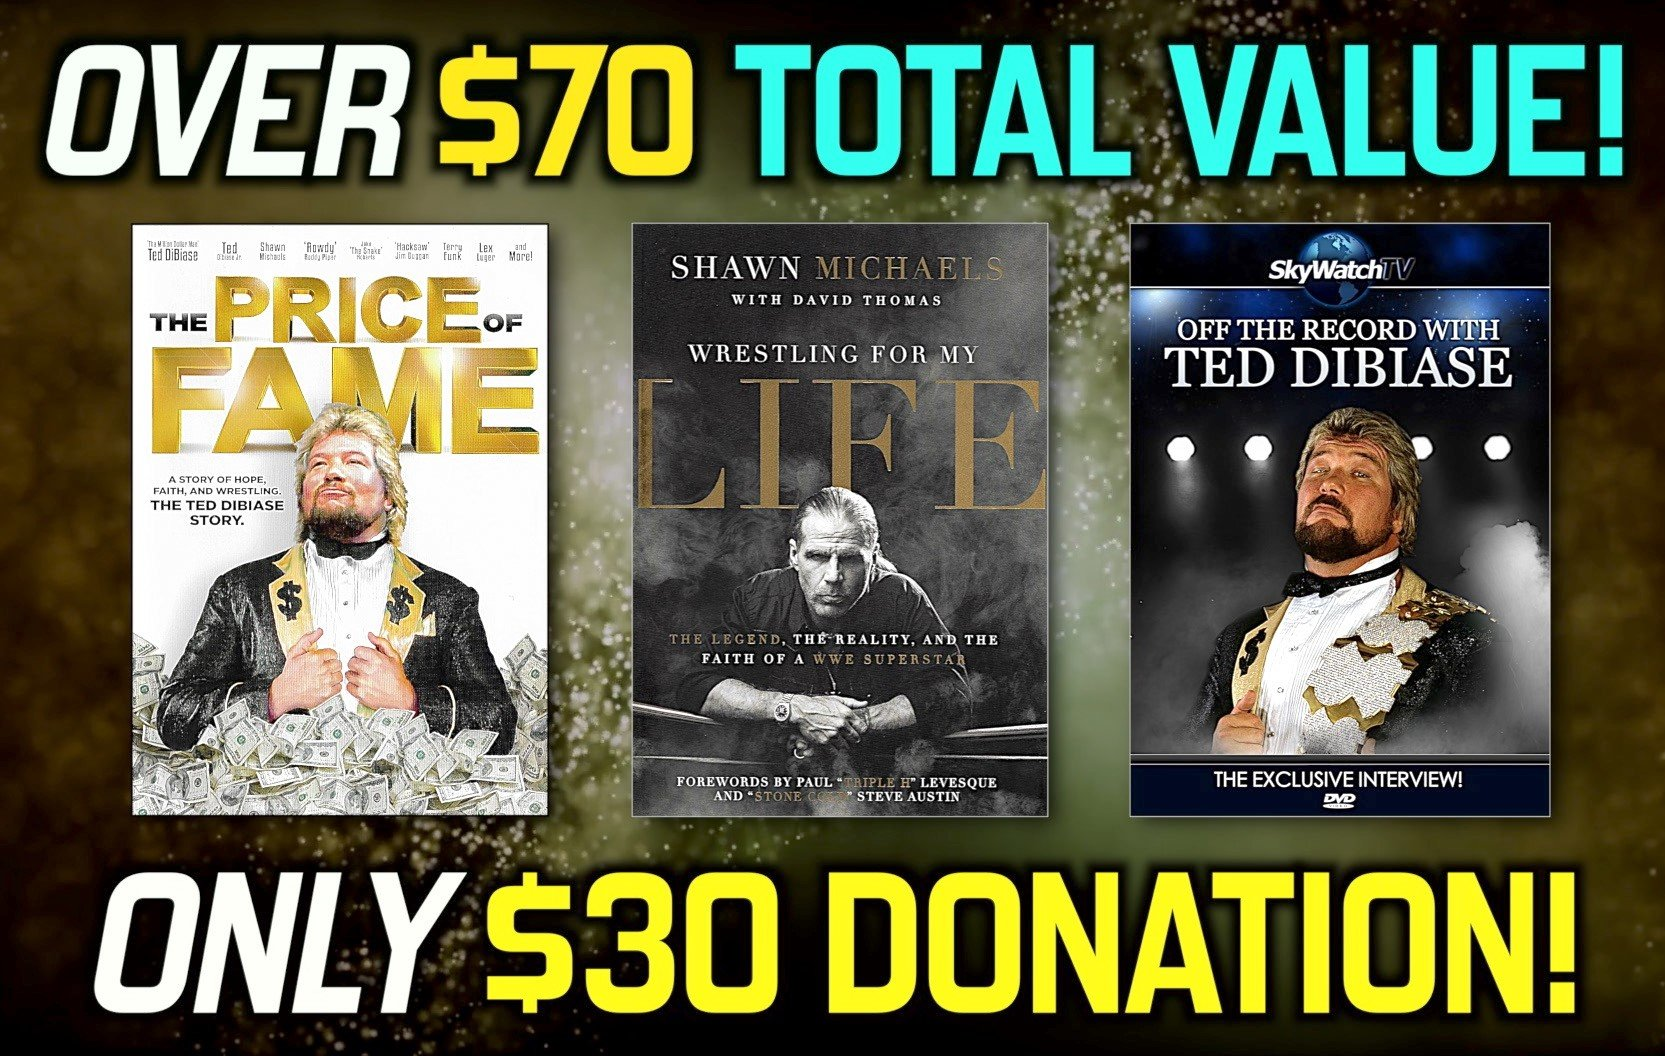 FREE BOOK & MOVIE WITH OUR INTERVIEW OF HALL OF FAME PRO WRESTLING STAR TED DIBIASE!